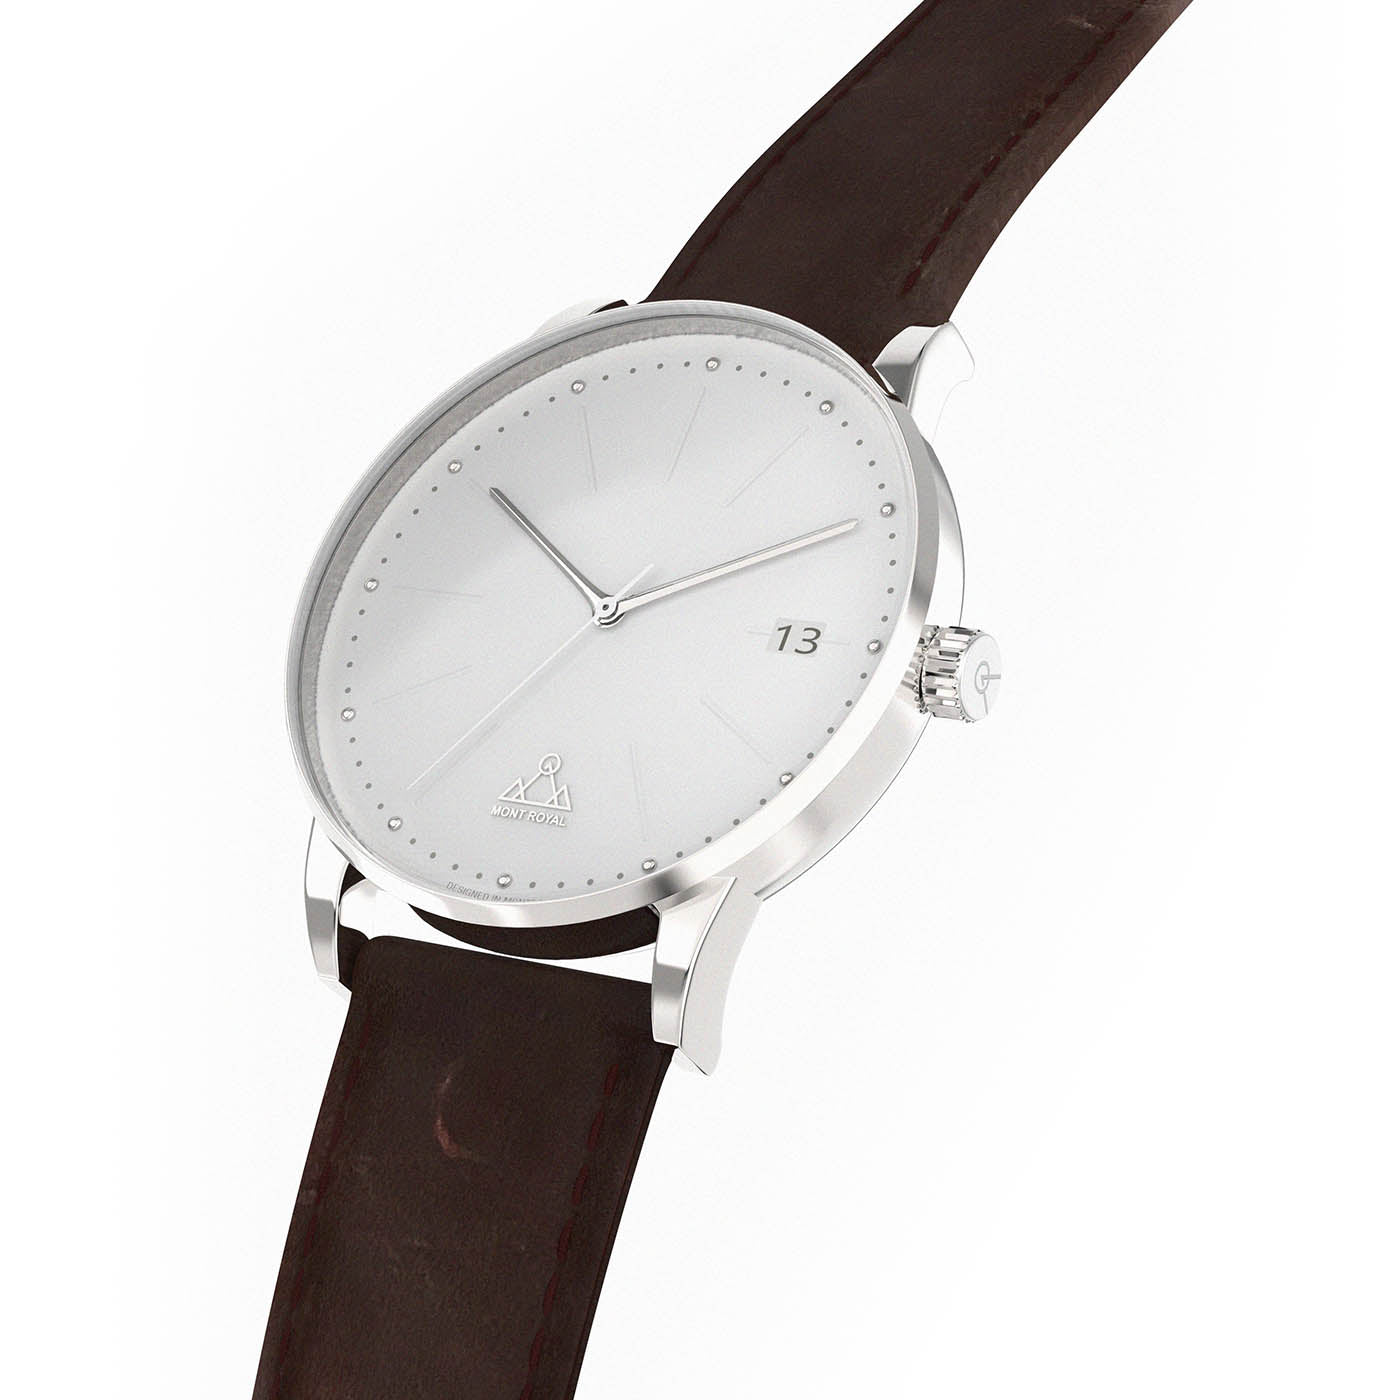 White + Brown Leather Classic Watch